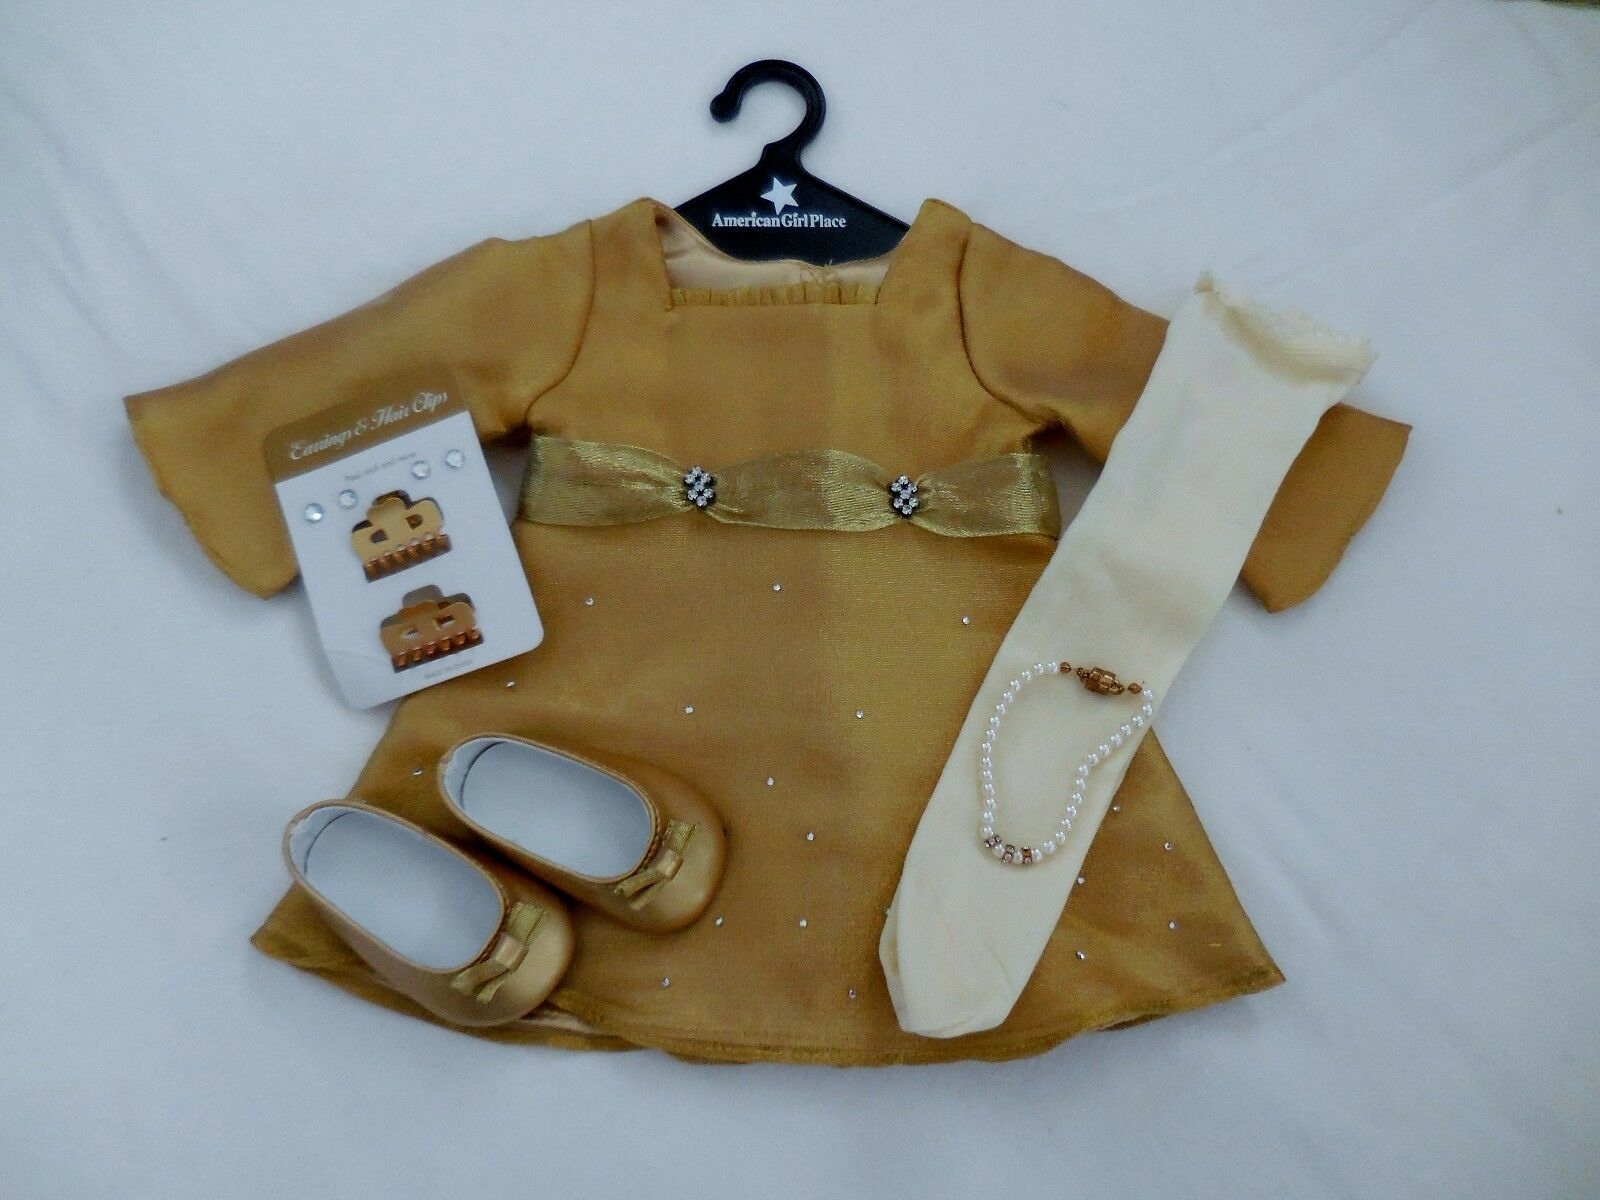 American Girl Doll Extremely RARE Shimmery Gold  Kleid & Accessories NIB 2002